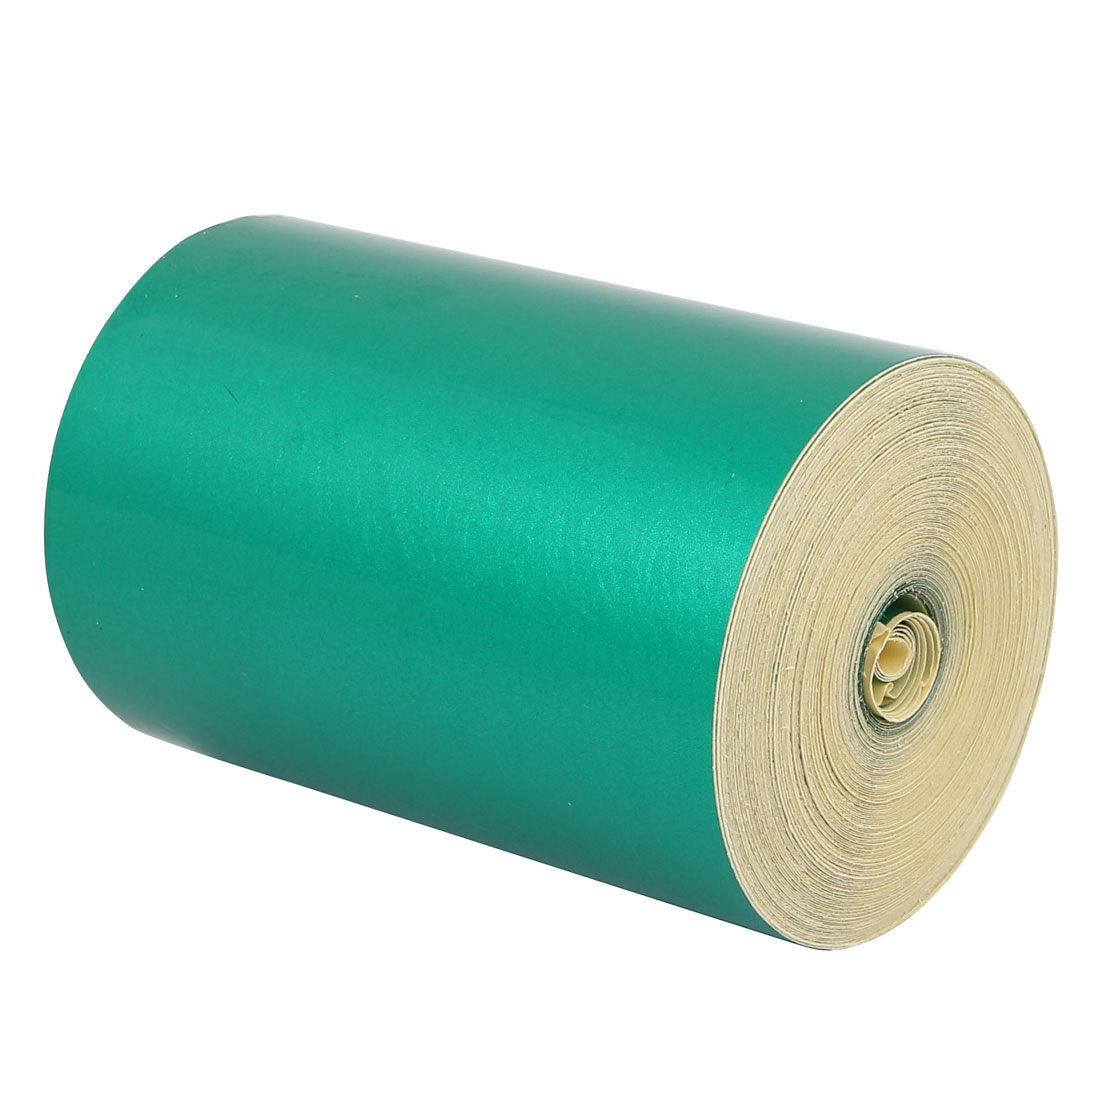 Single Sided Adhesive Reflective Warning Tape Green 15M Length 10cm Width